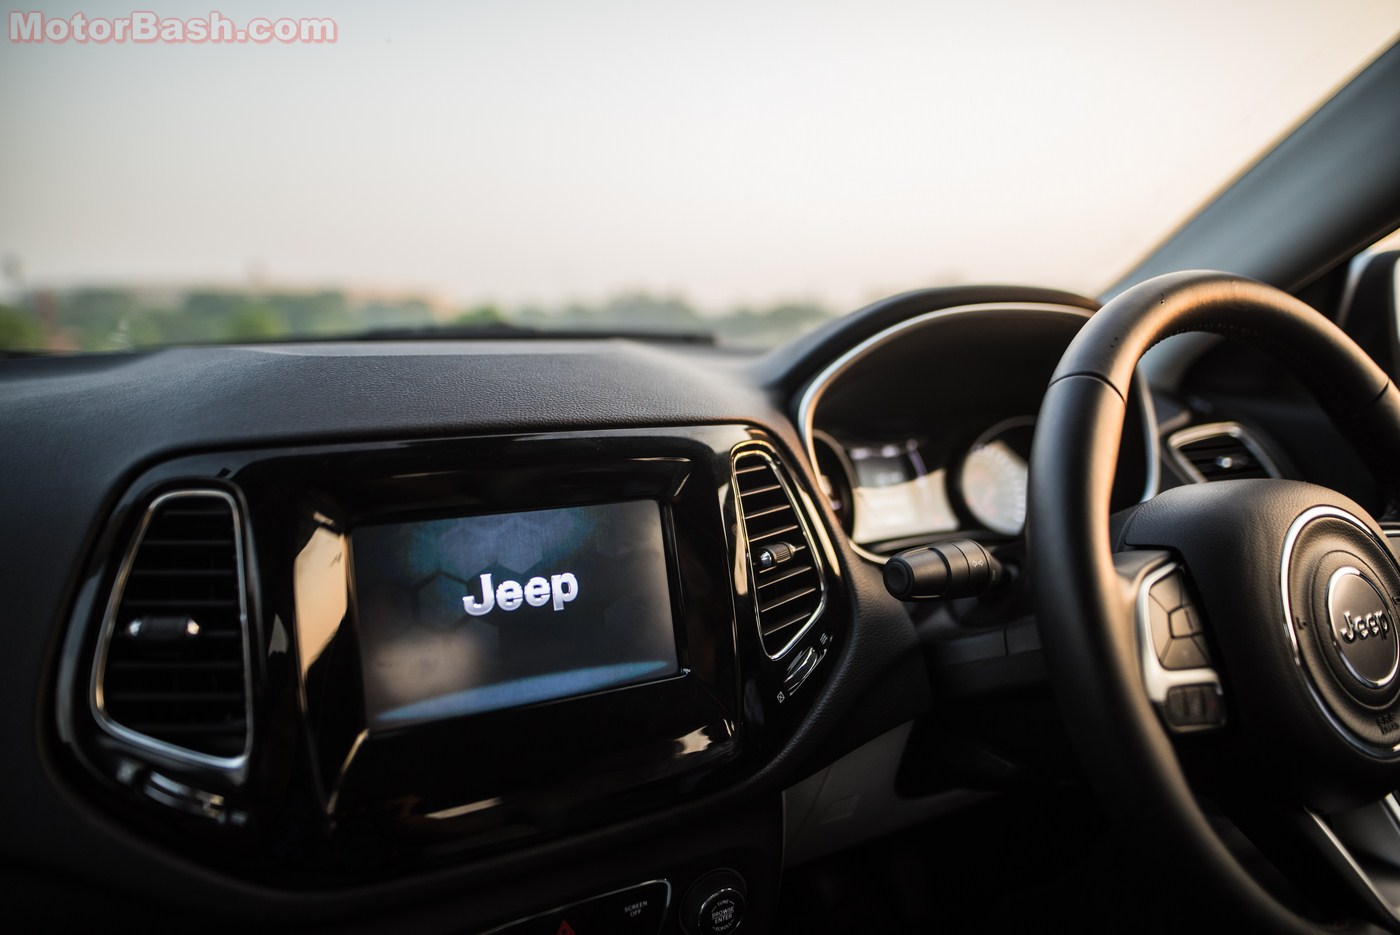 Jeep Compass Review Dashboard and Steering Wheel